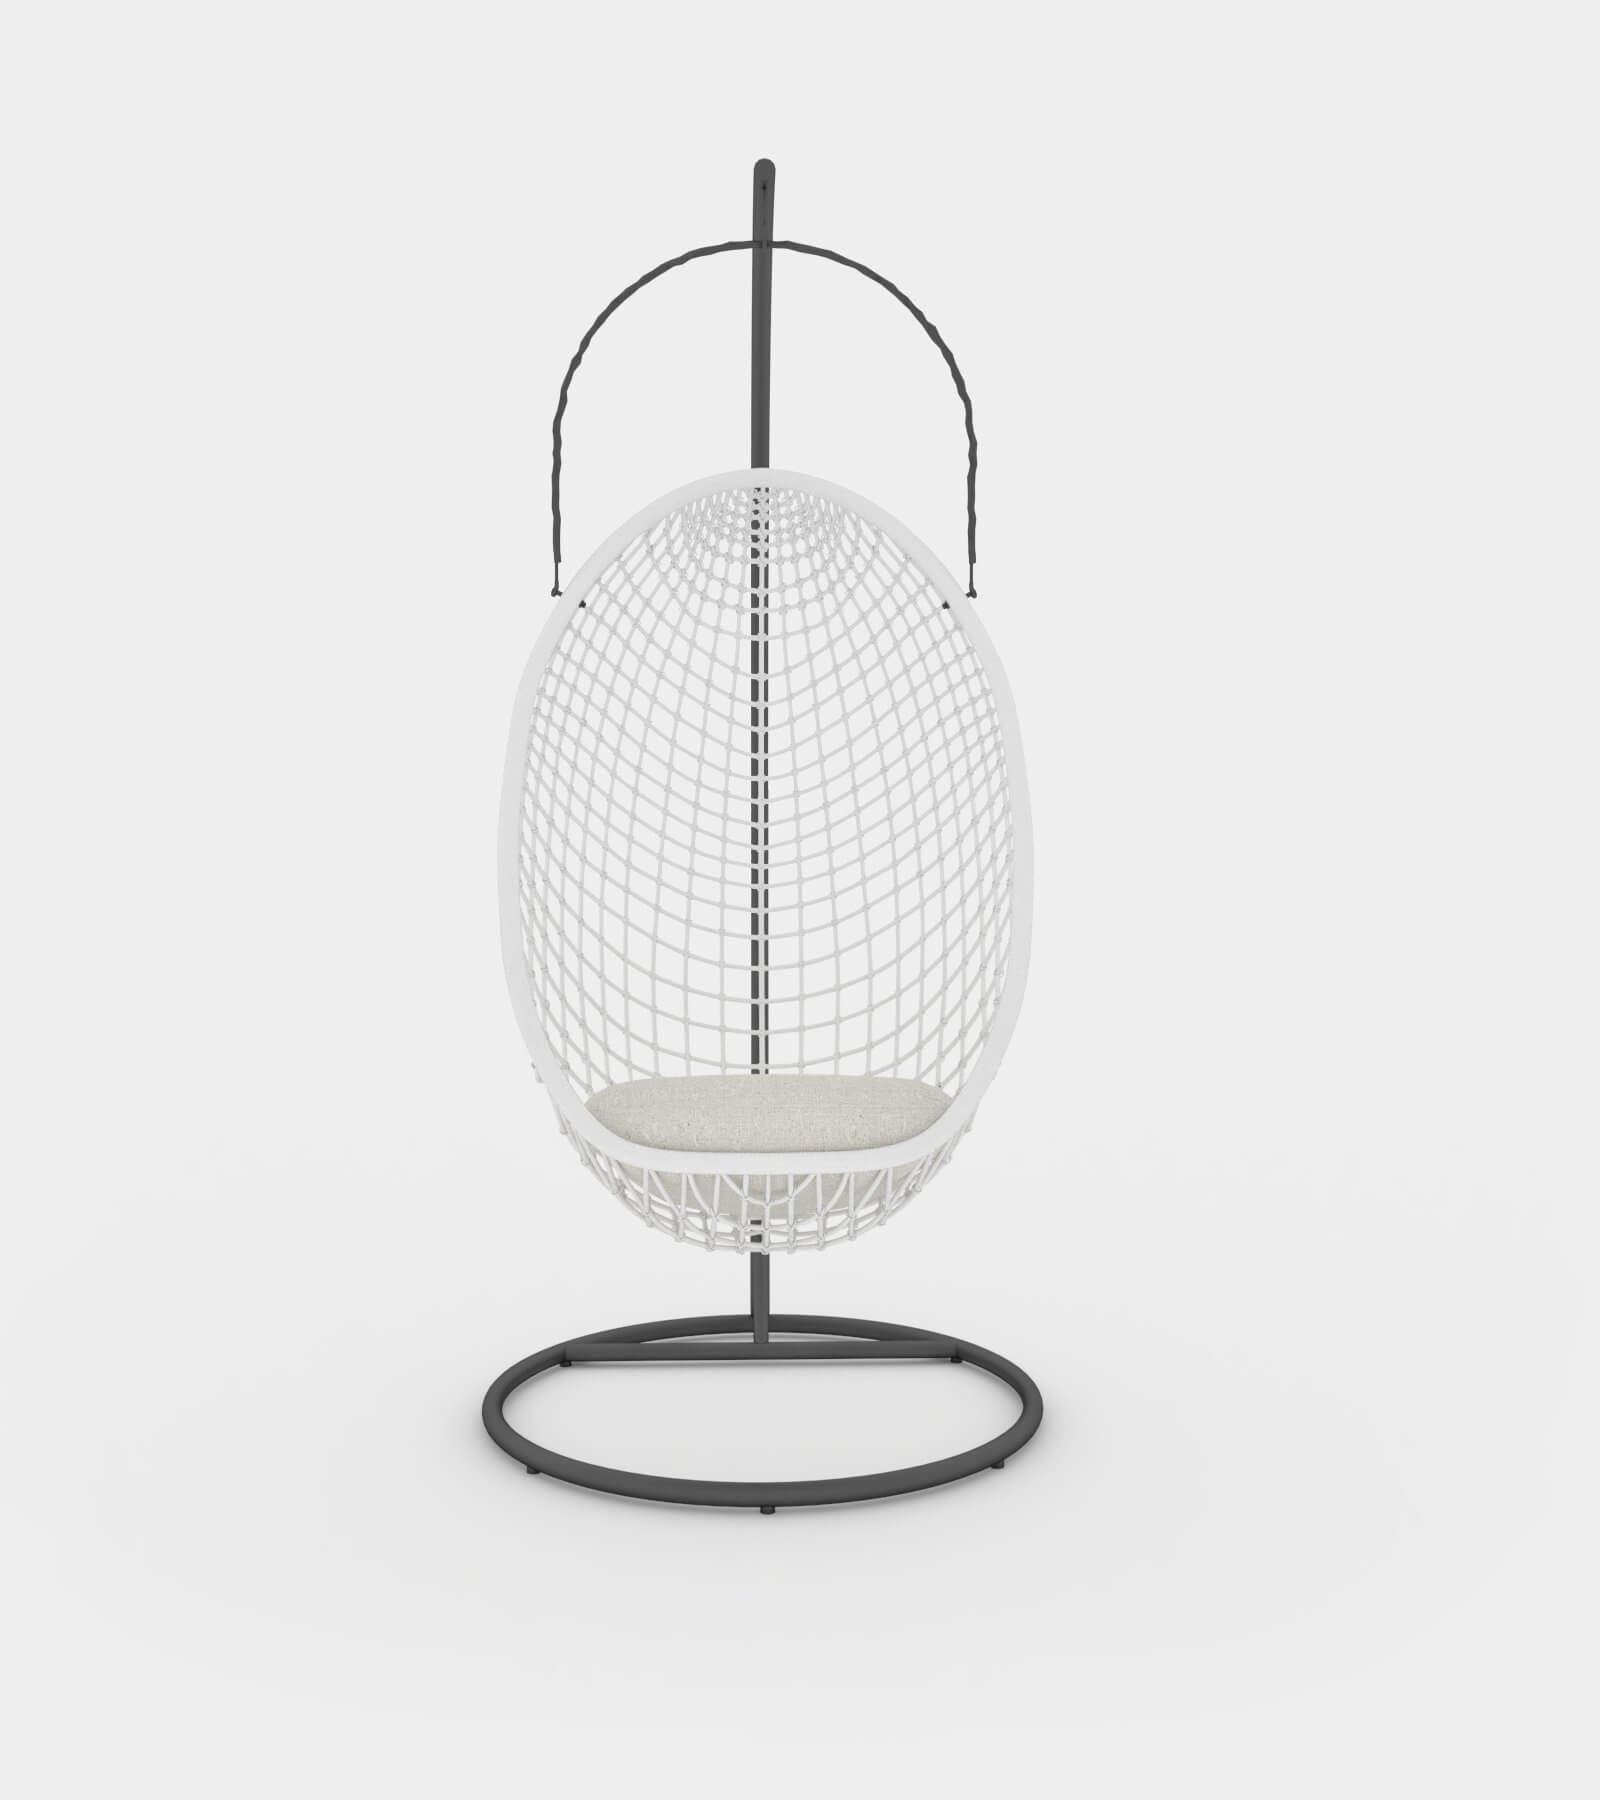 Chillout rattan hanging chair 2 - 3D Model